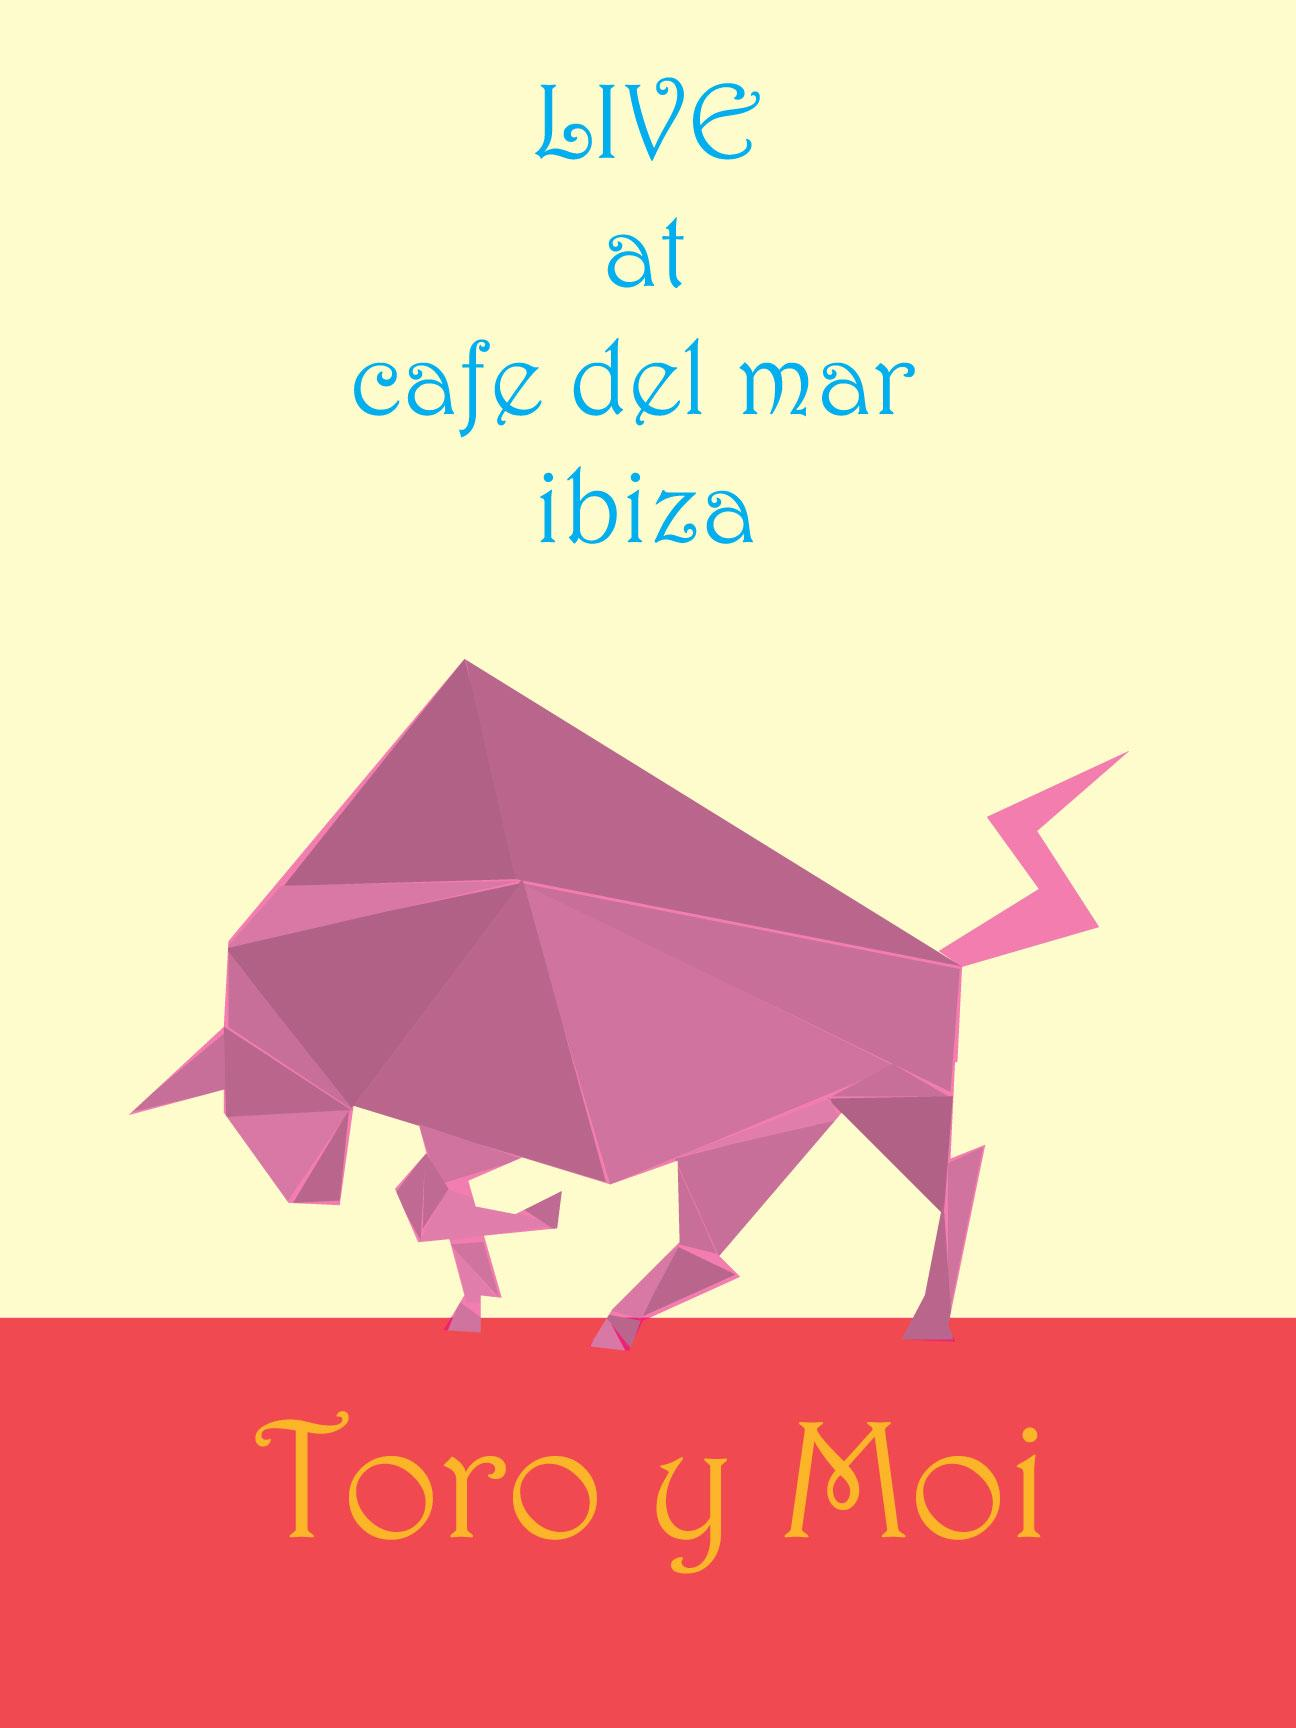 Toro y Moi Live in Ibiza - image 4 - student project